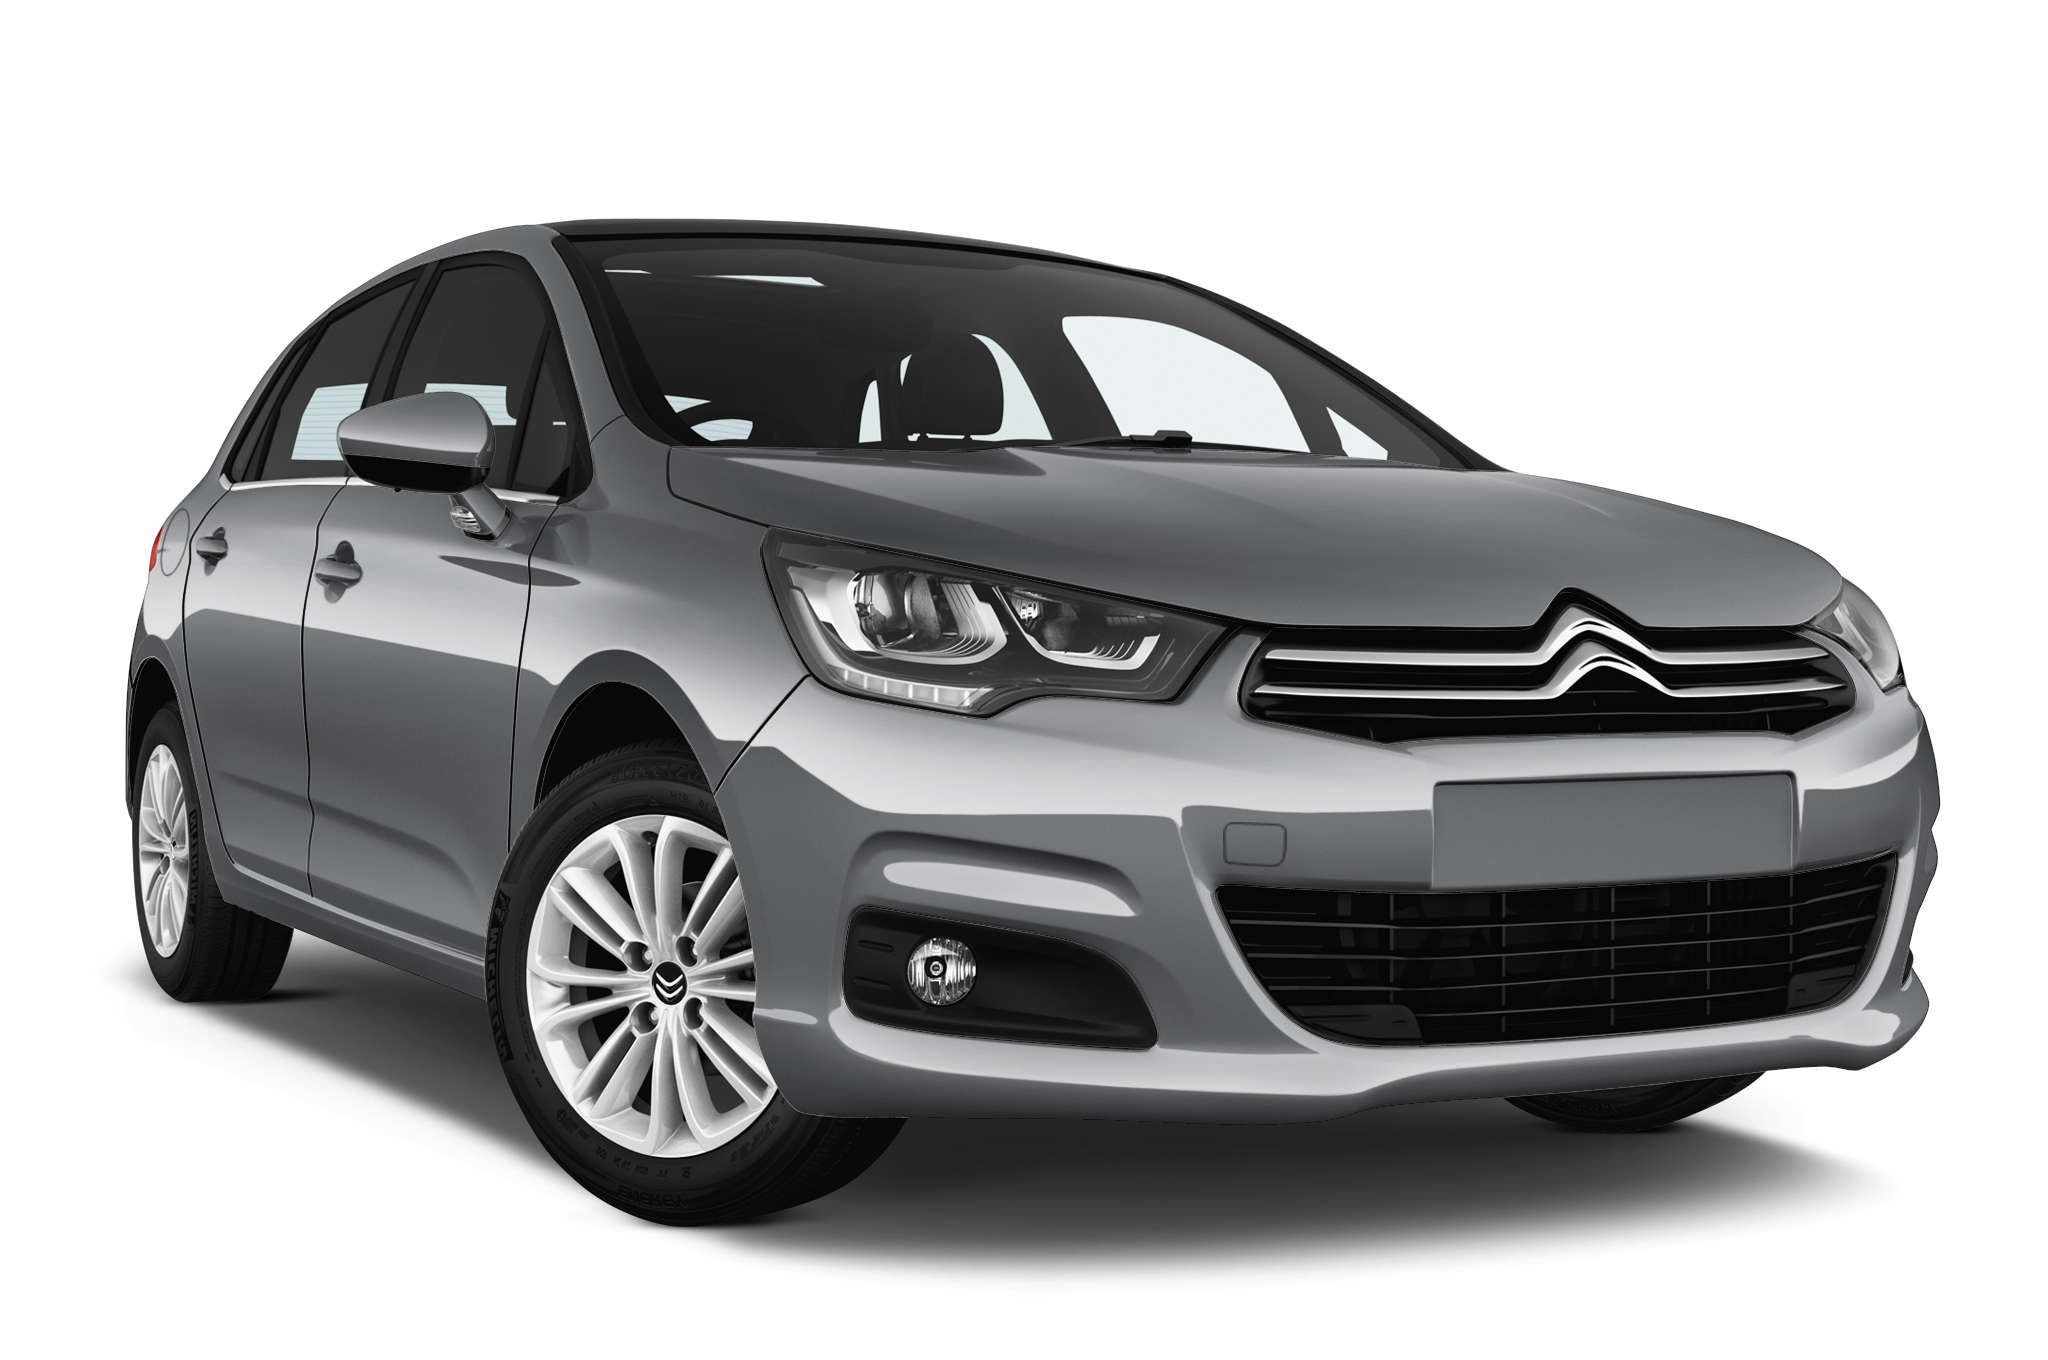 Citroen Car Rental in Casablanca Port Railway Station, Morocco - RENTAL24H